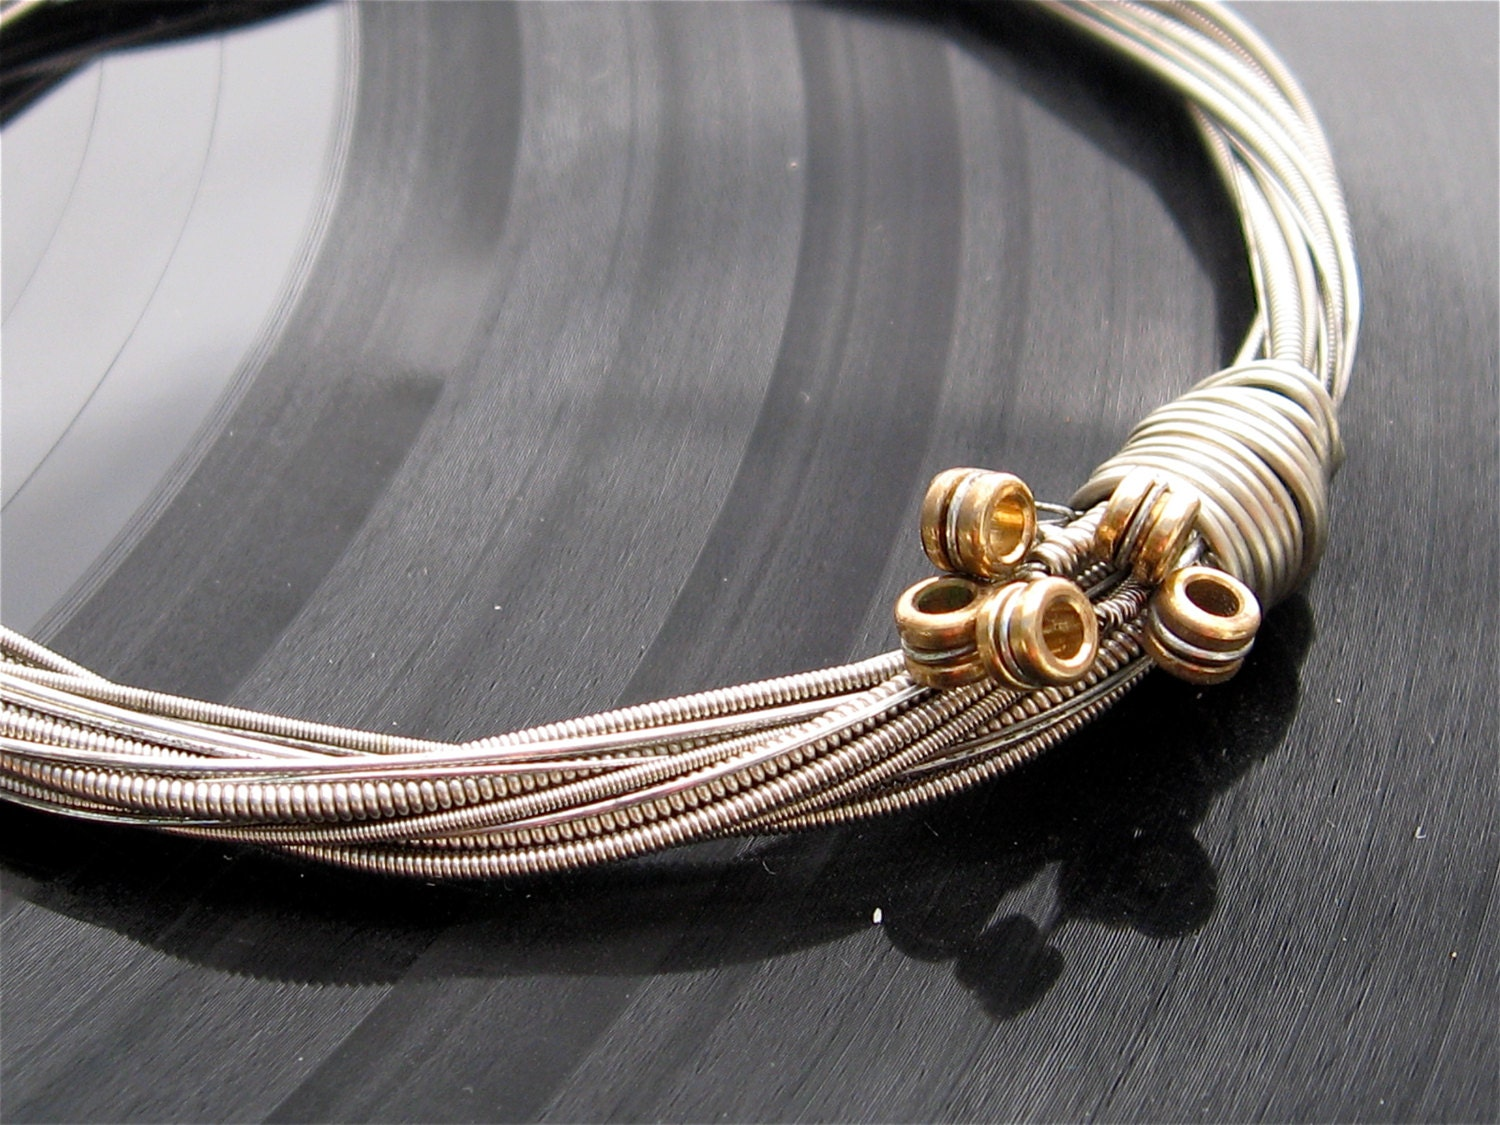 Custom Guitar String Bracelet that I will make out of guitar strings THAT YOU SEND to me Unisex Unique Heirloom one of a kind Keepsake for sale